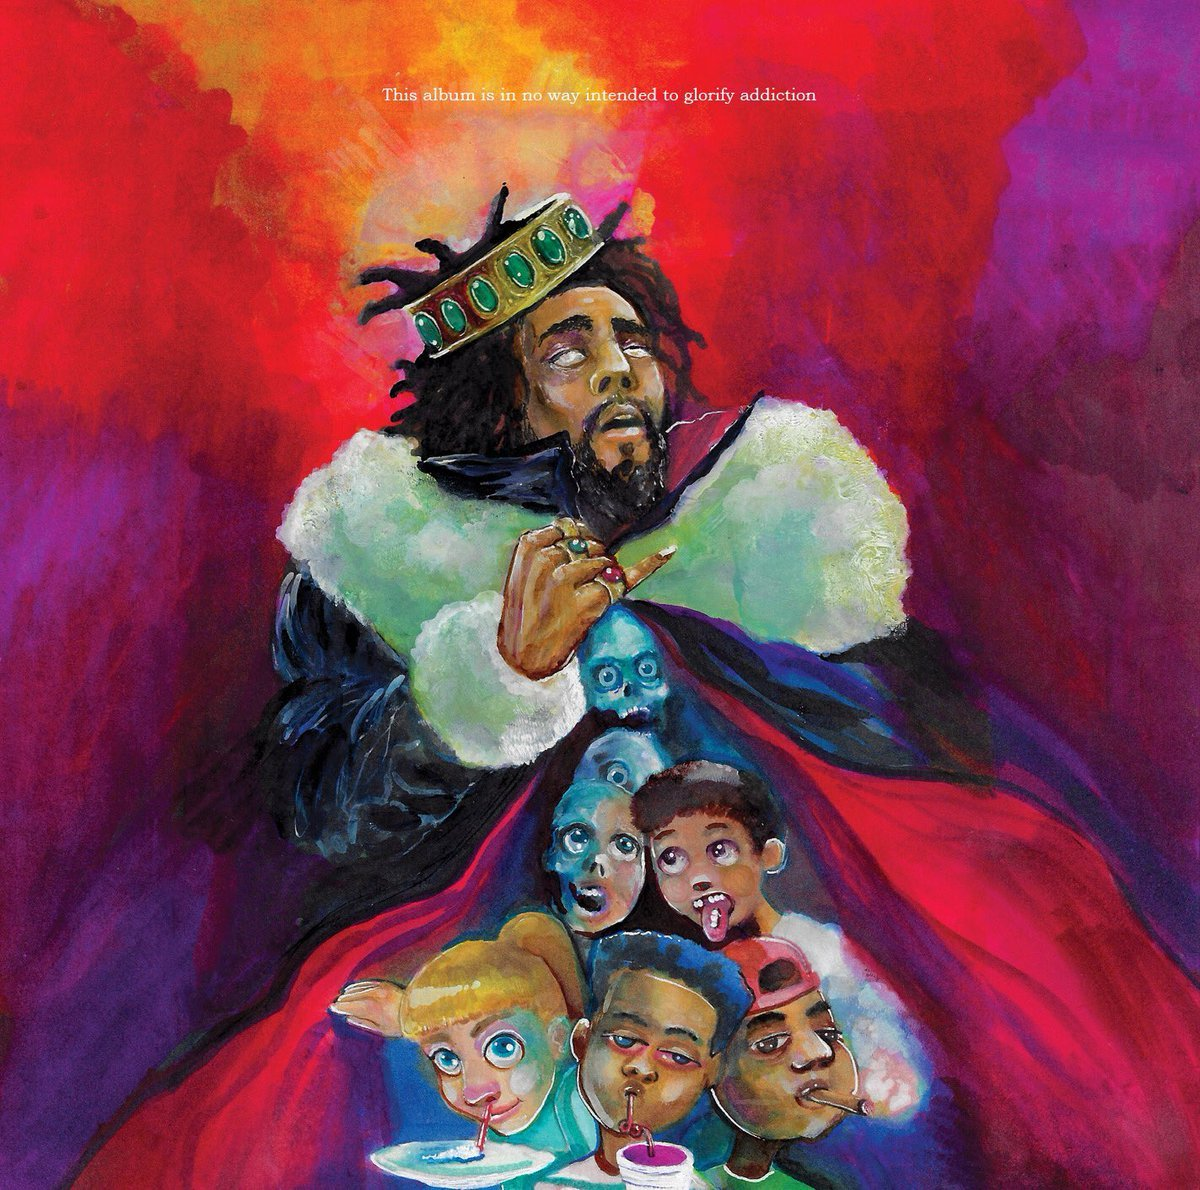 Cole has revealed artwork and tracklisting for new album KOD